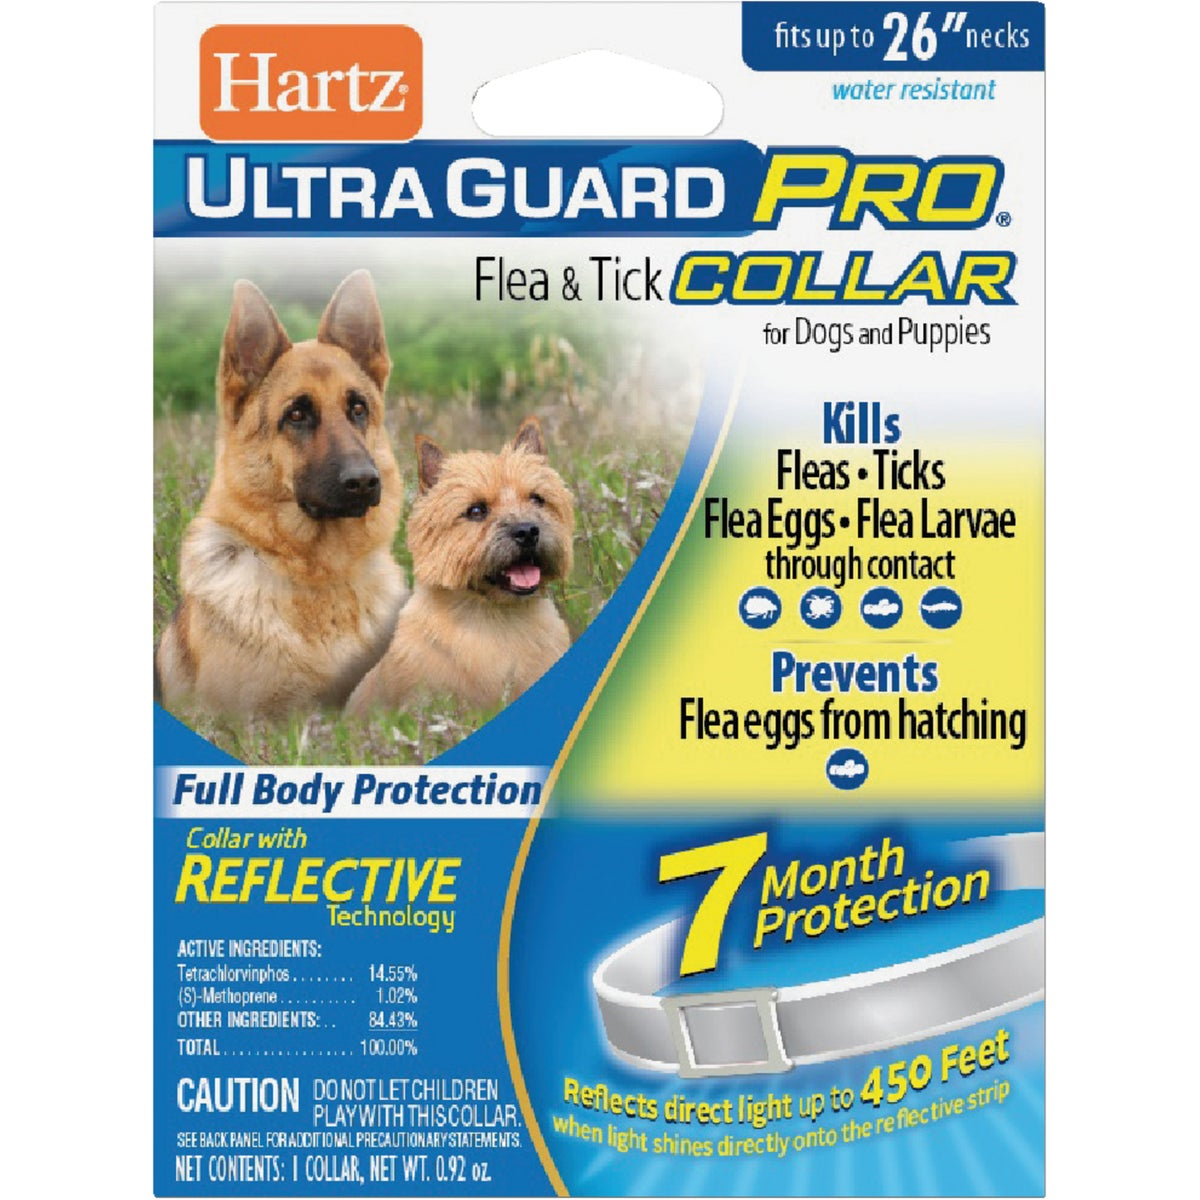 PUP&DOG RFLCT F&T COLLAR - 04183 by Hartz Mountain Corp